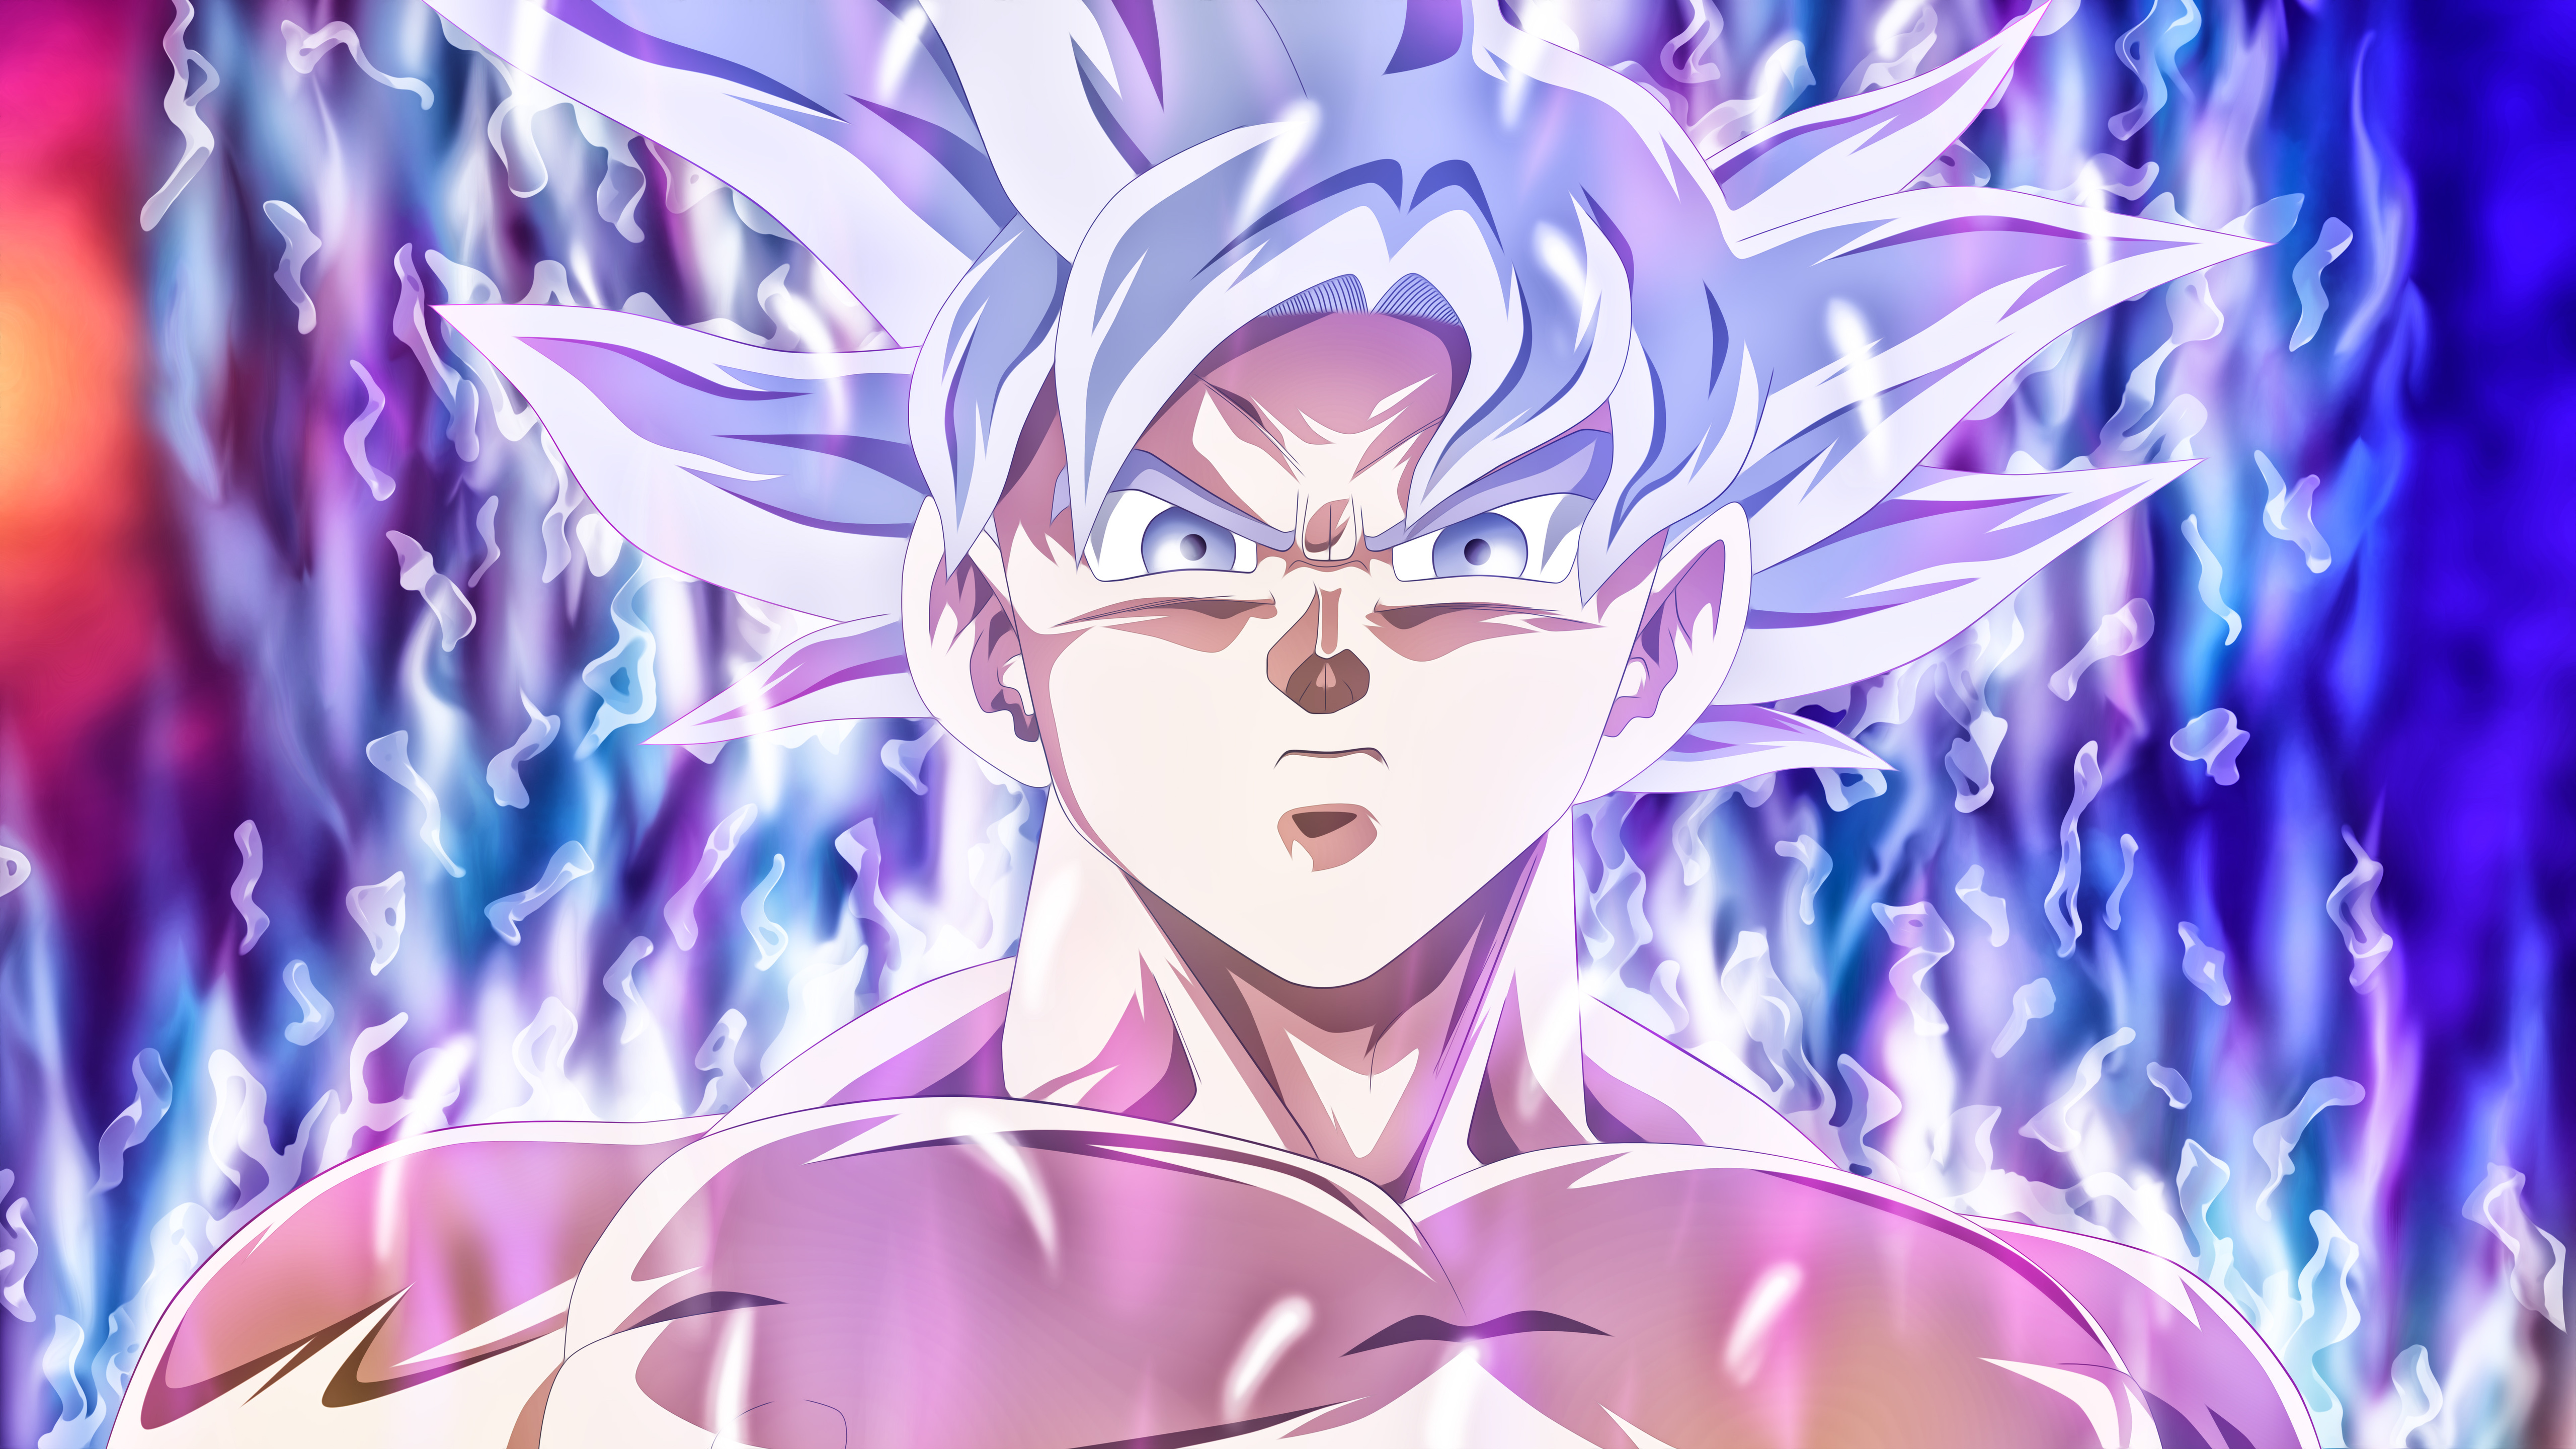 5120x2880 goku mastered ultra instinct 5k hd 4k wallpapers images backgrounds photos and pictures - Mui goku wallpaper ...